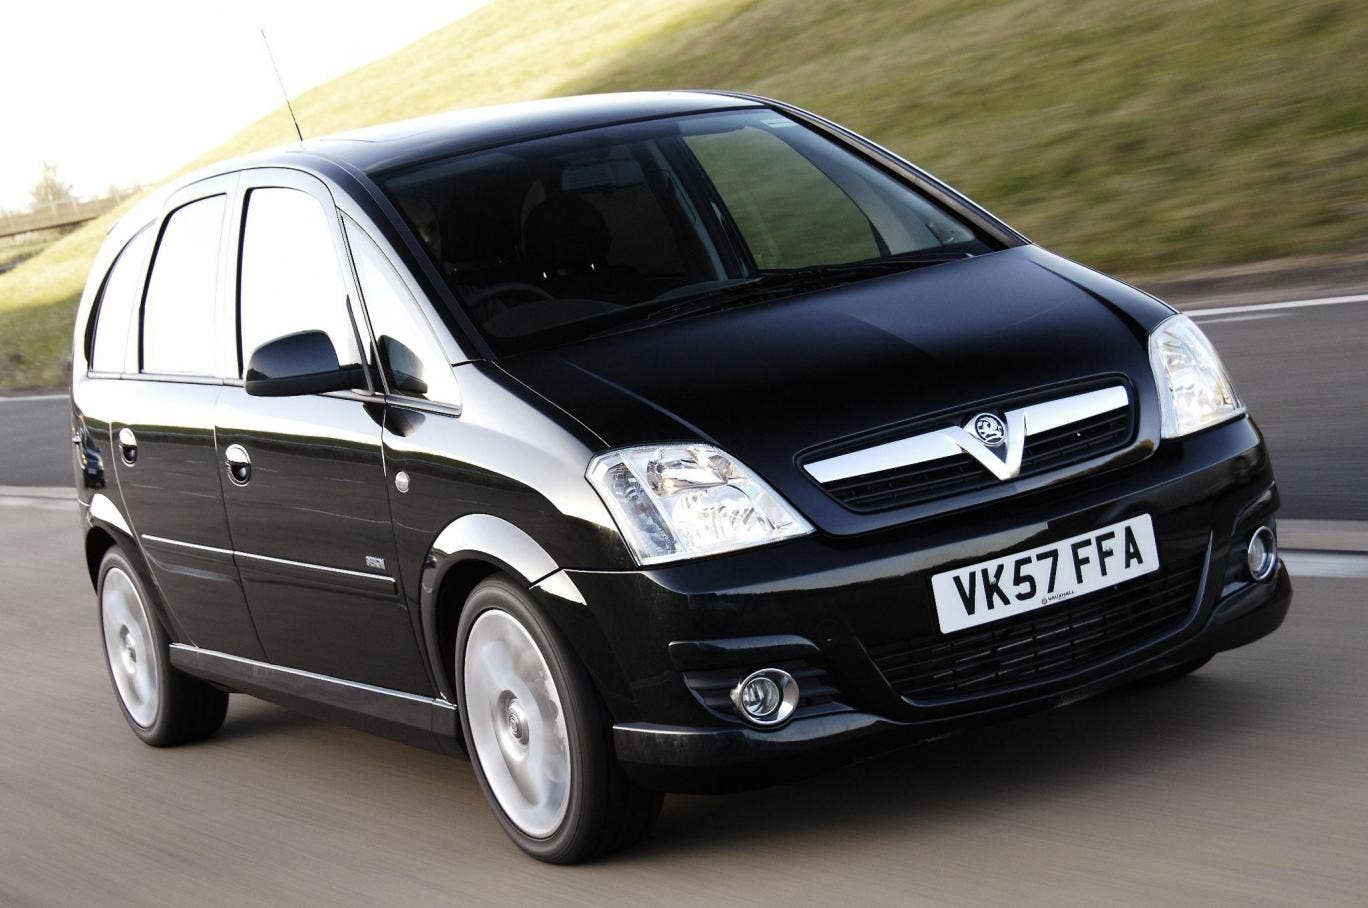 Interesing twist: The Vauxhall Meriva's rear doors hinge from the back so that a dog could potentially get in and out easily